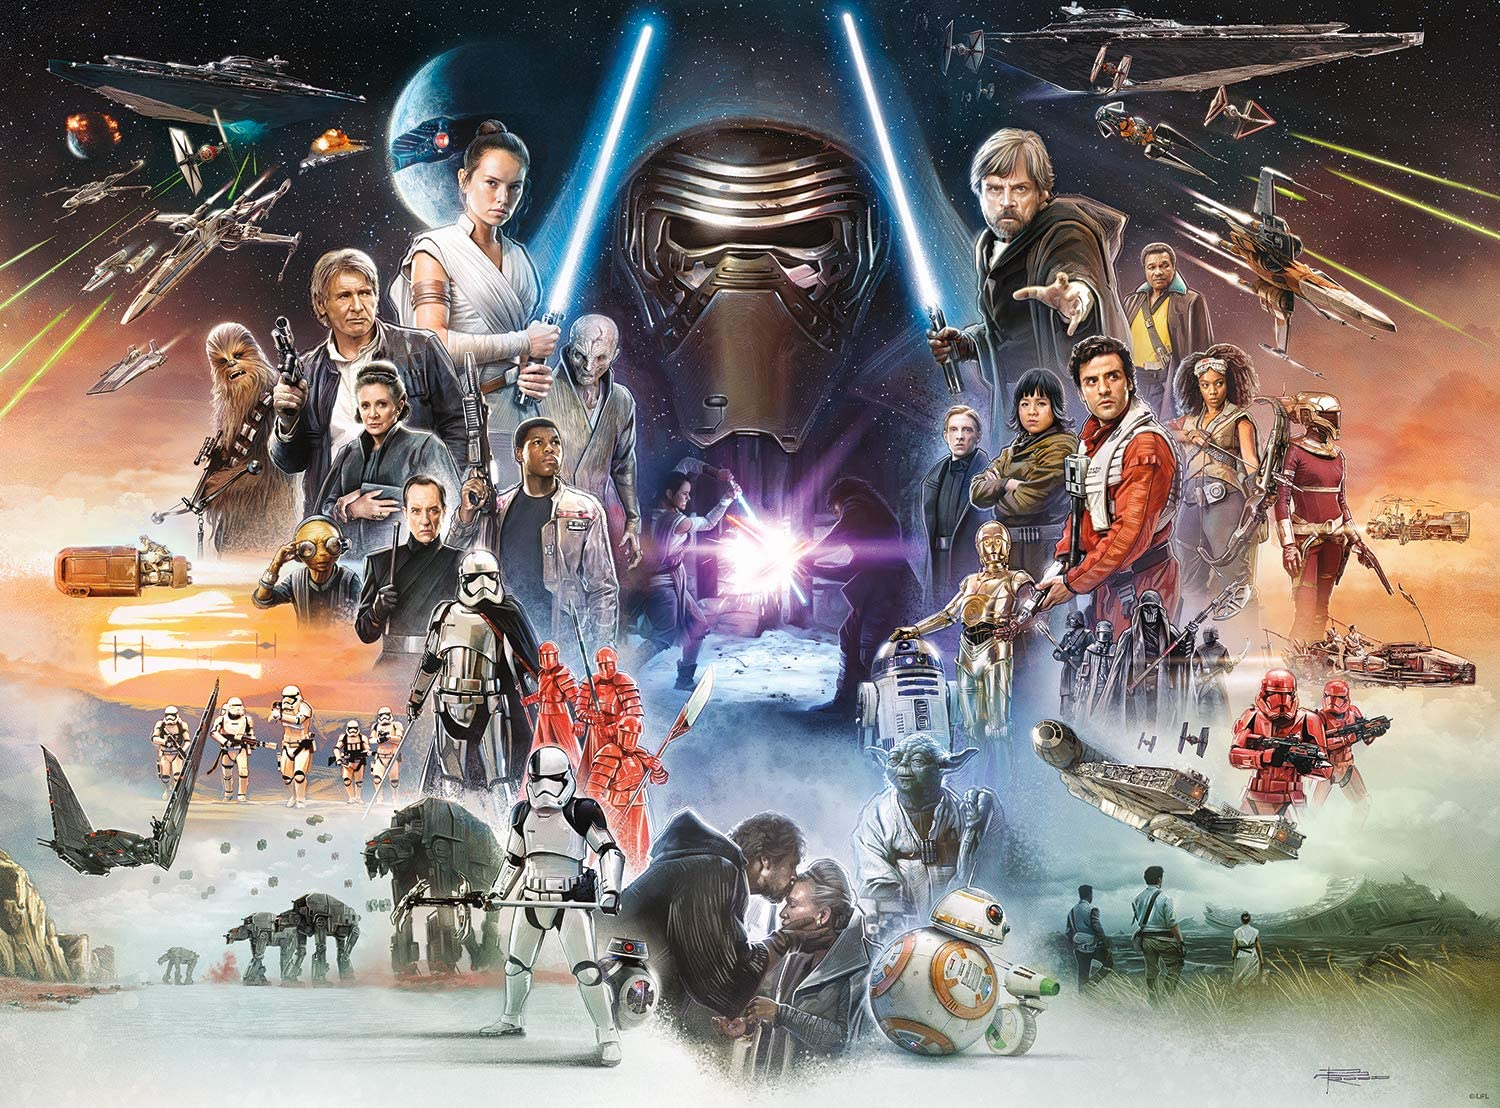 Amazon Com Star Wars If Skywalker Returns The New Jedi Will Rise 1000 Piece Jigsaw Puzzle Toys Games